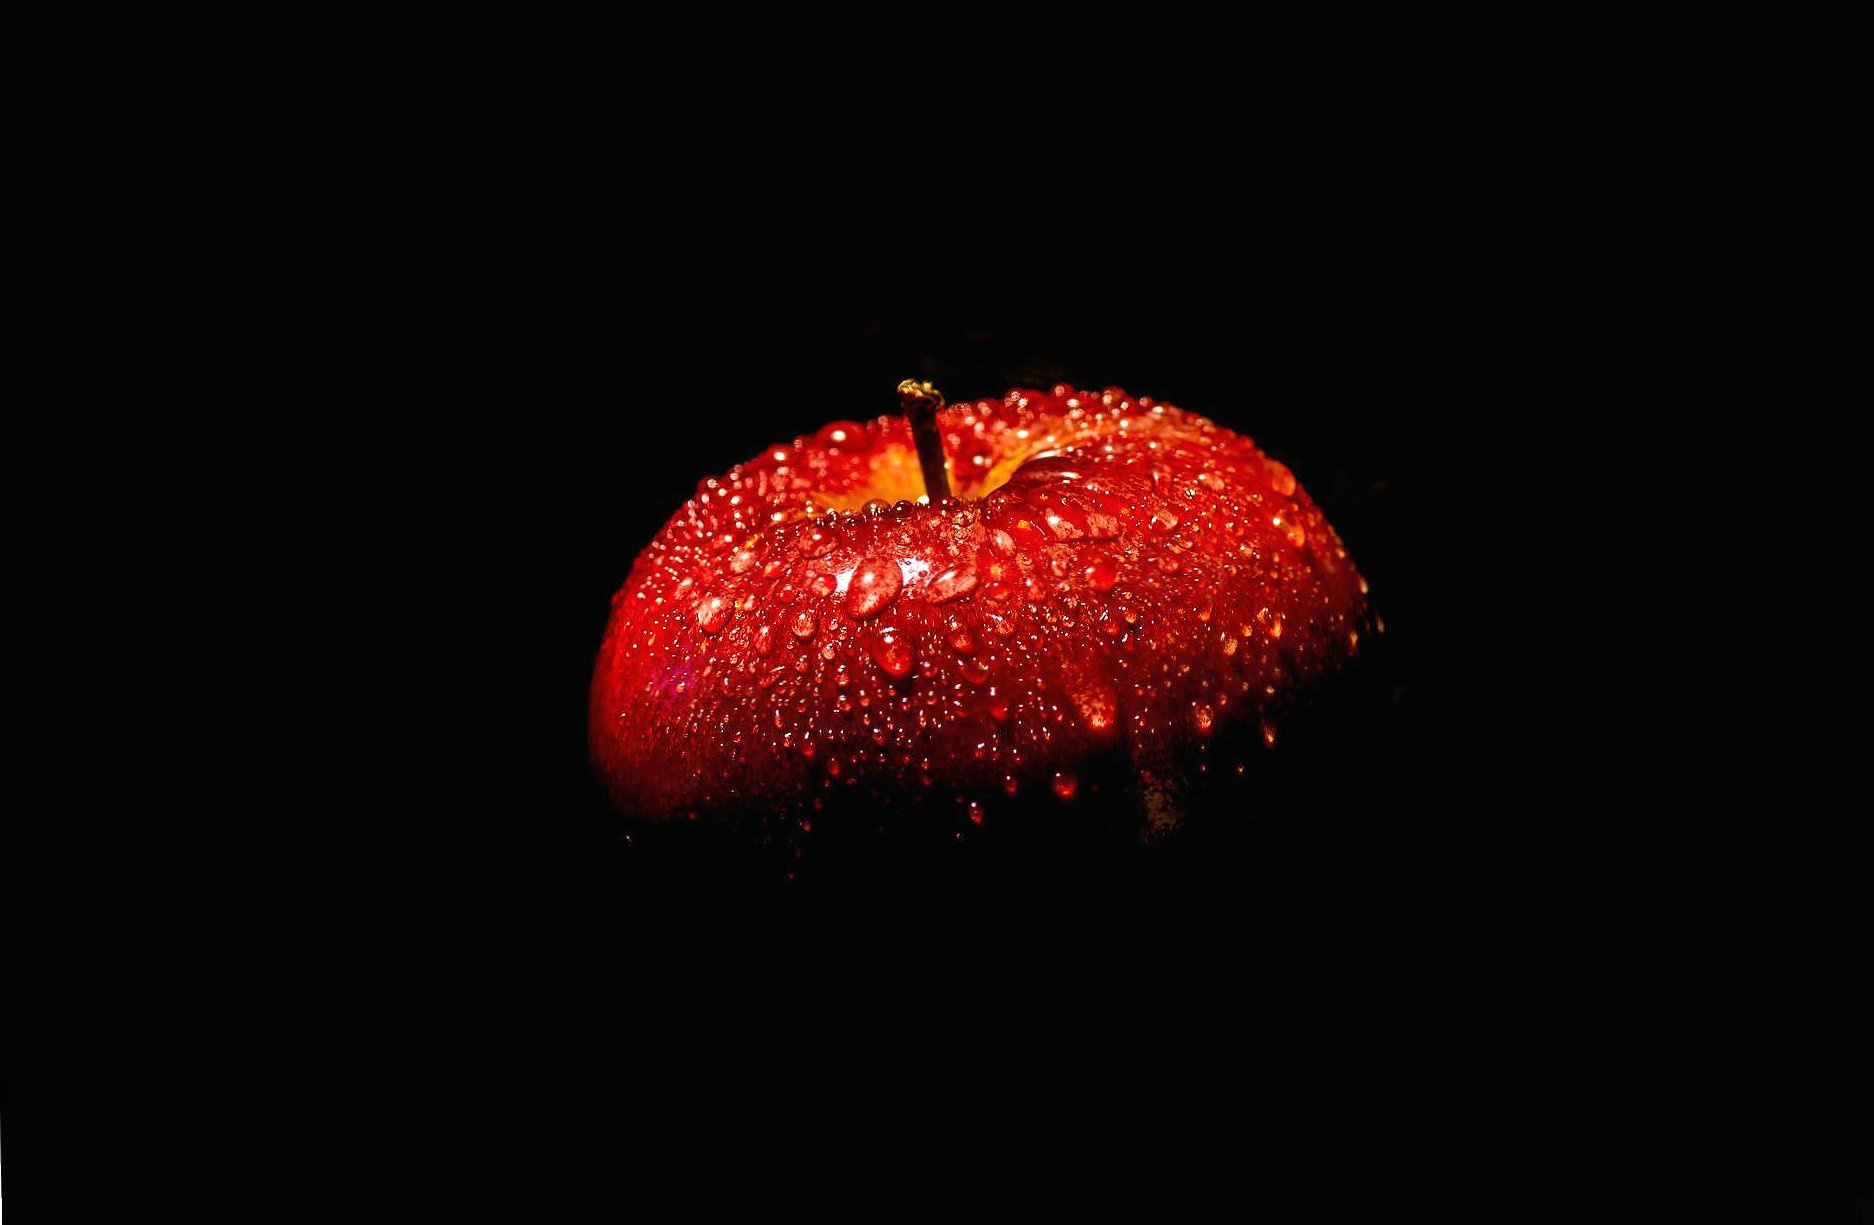 Red apple wallpapers HD quality